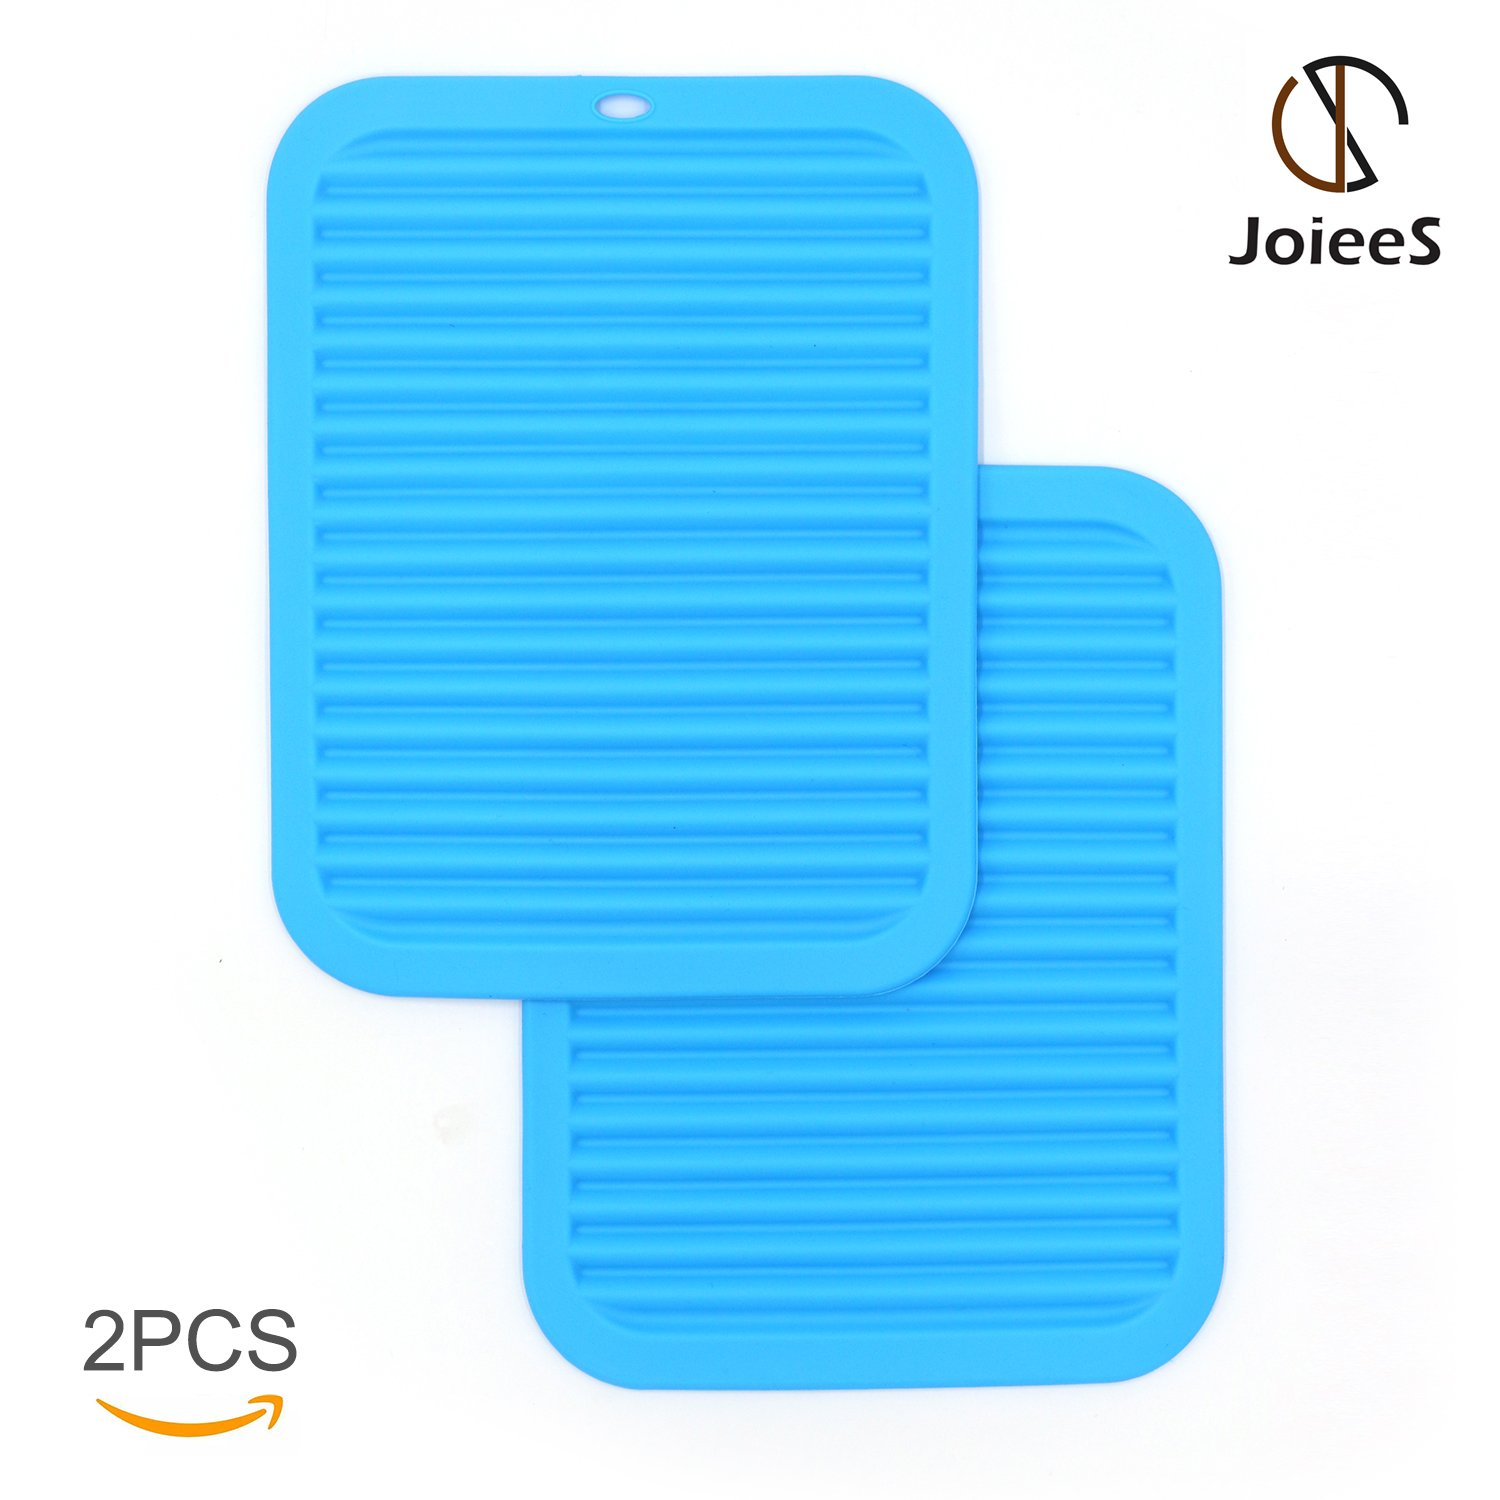 JoieeS 2PCs Kitchen Trivet Extra Large-Sized Hot Pads Insulated Non-slip BLUE